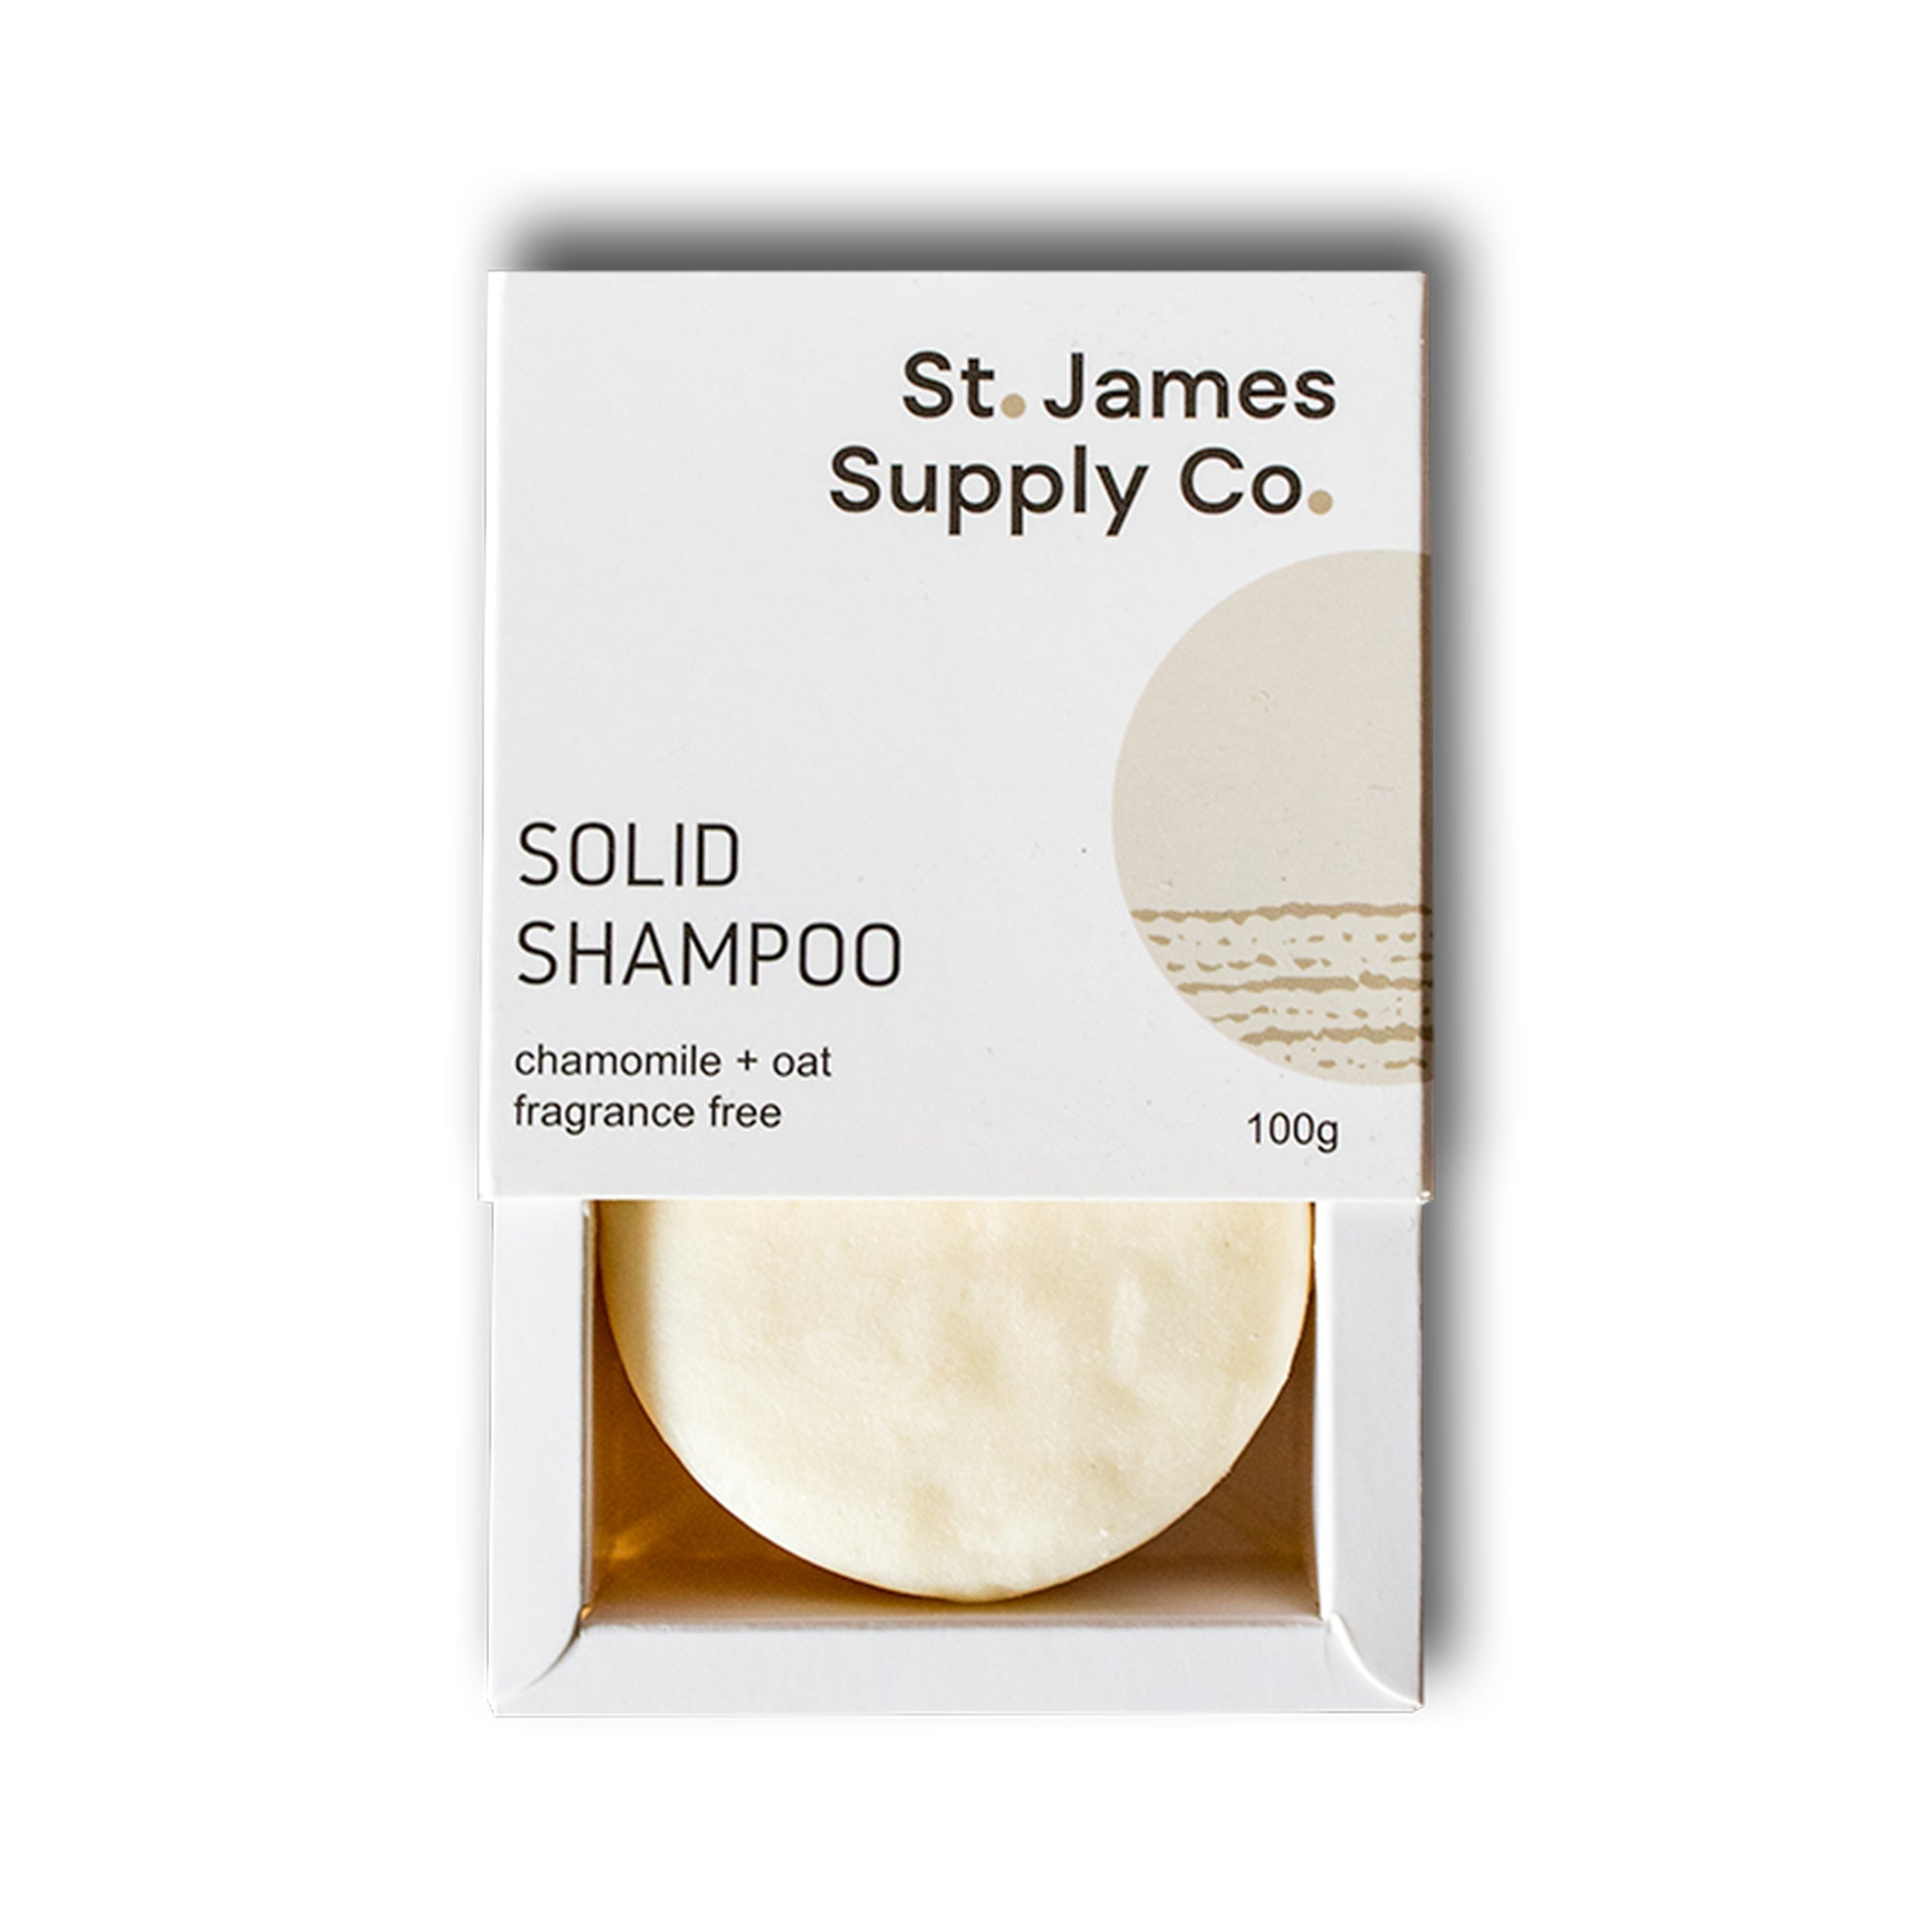 Scent Free Chamomile and Oat Shampoo Bar